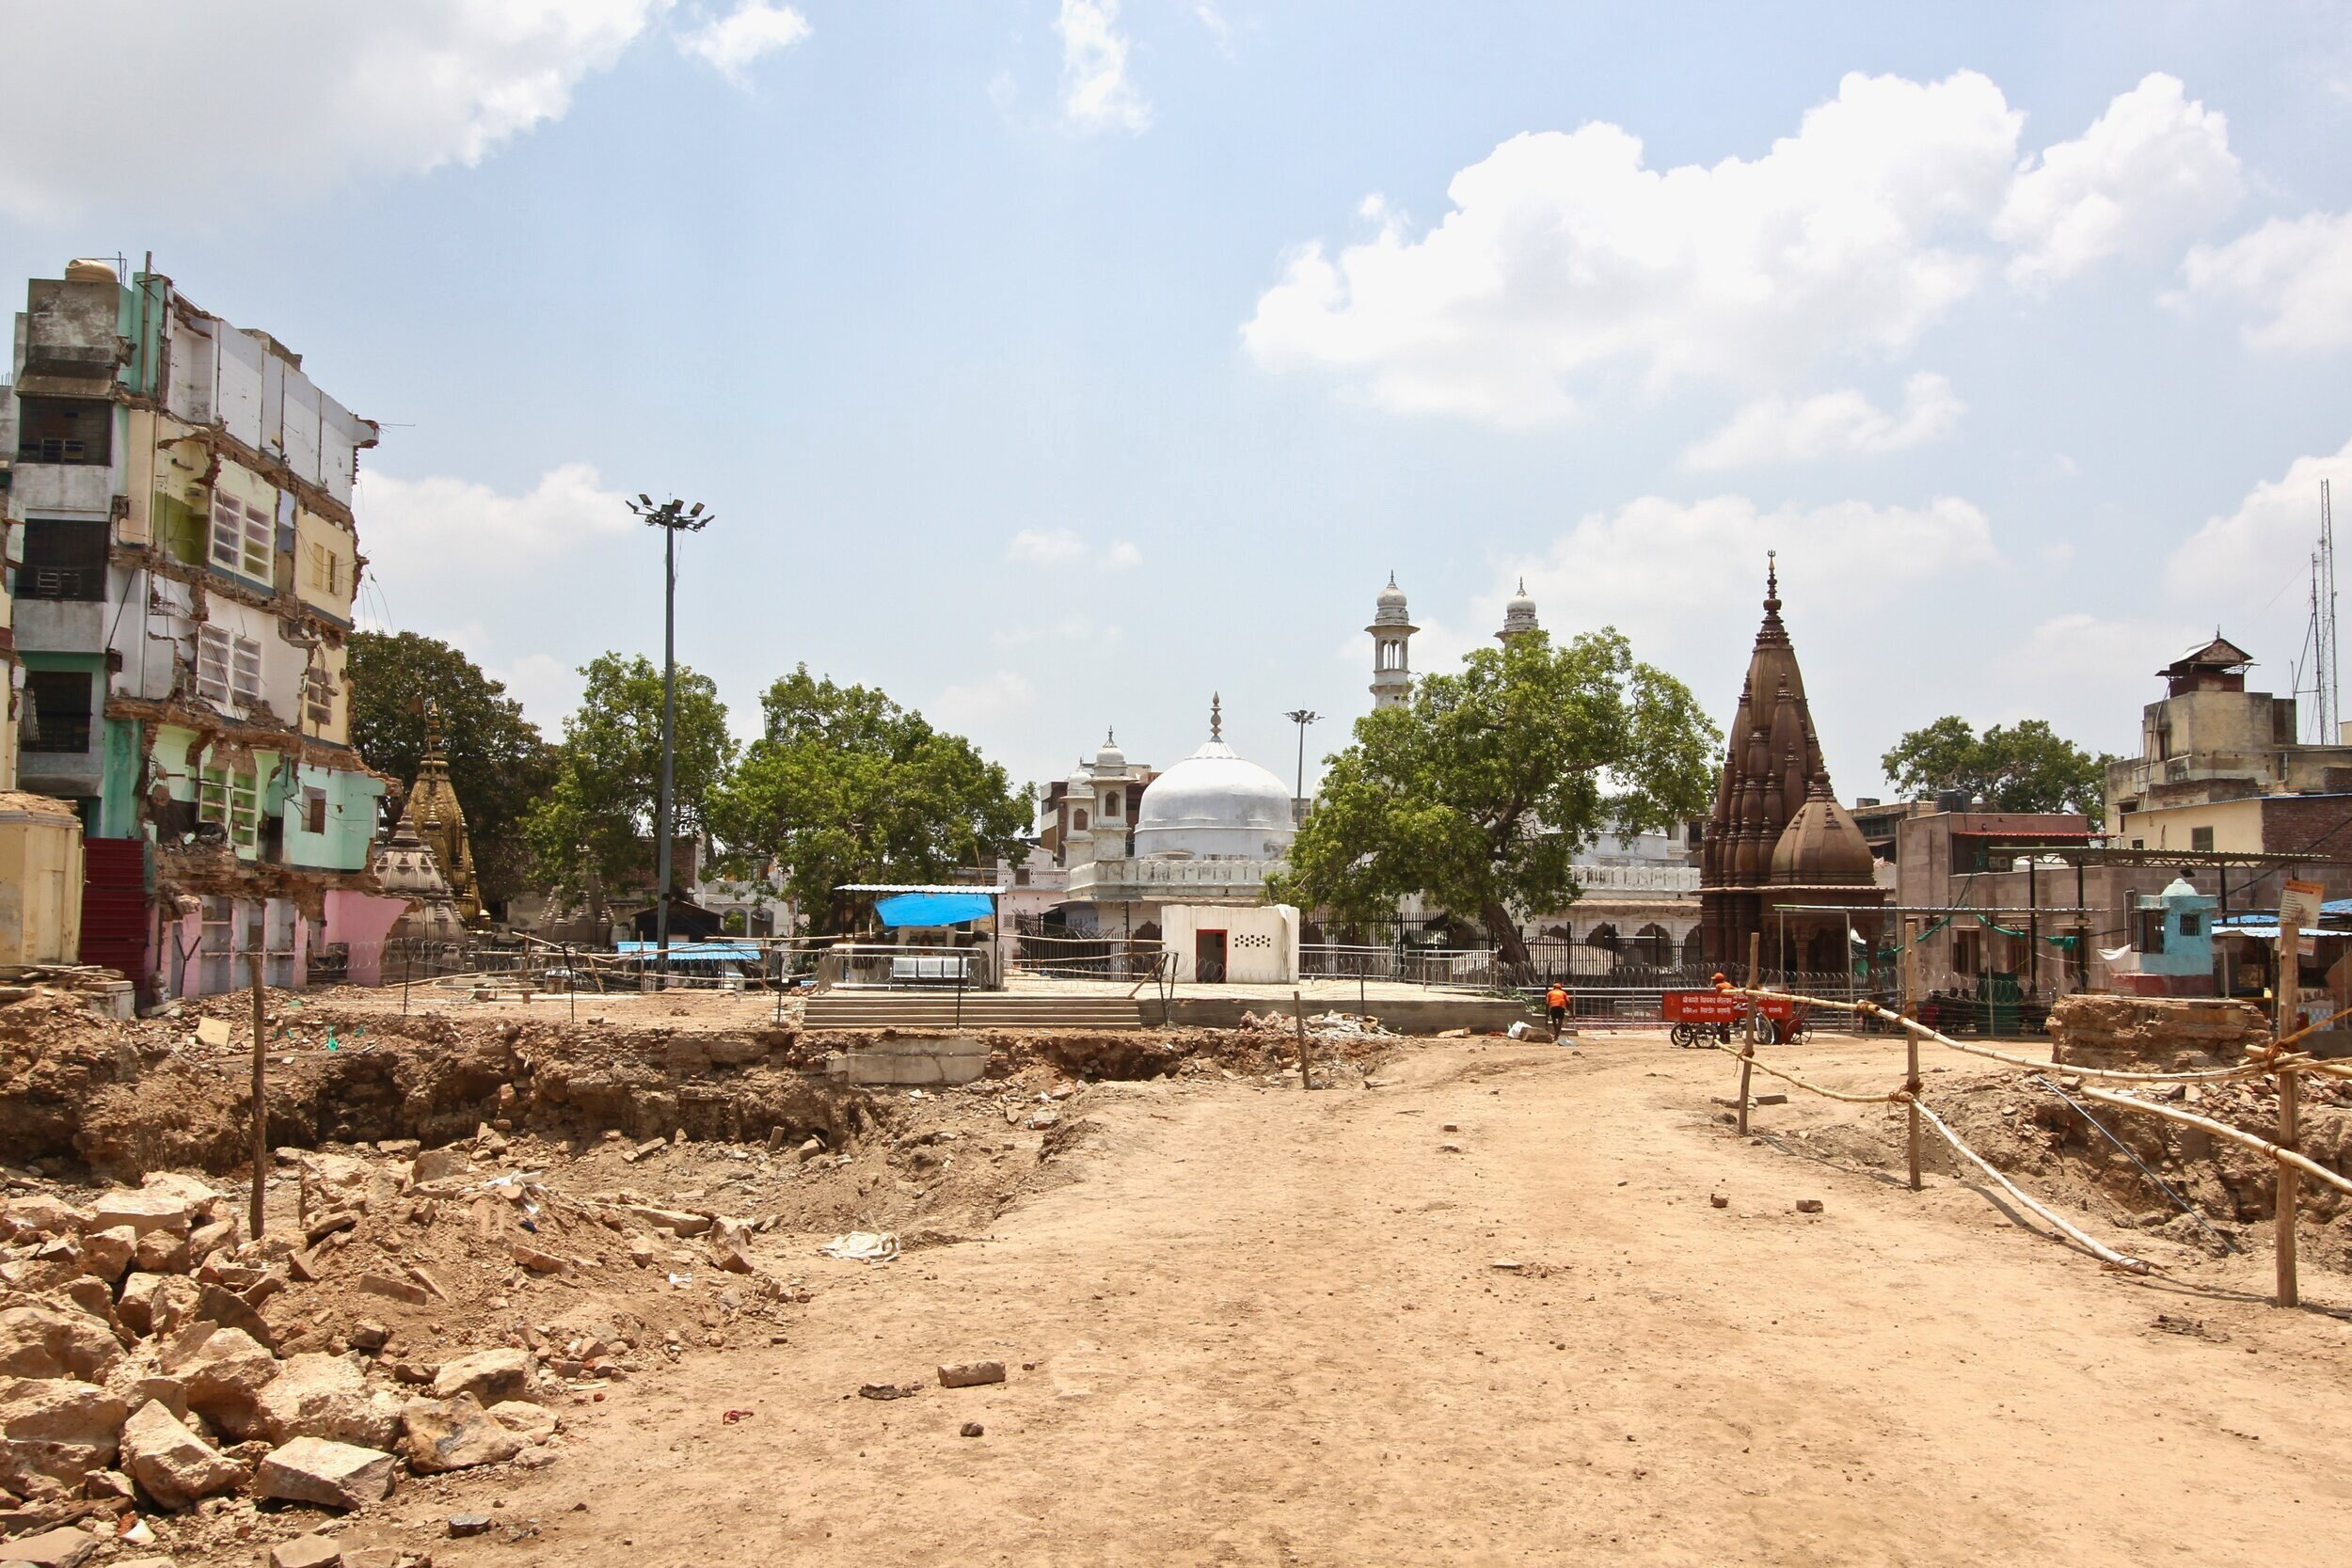 "Figure 17. The excavation of the Vishwanath Corridor also reveals a different historical structure—the  Gyanvapi Mosque , built by the Mughal emperor Alamgir (Aurangzeb) on the site of an earlier Hindu temple, ca 1669. The corridor, then, leads not just to the Kashi Vishwanath temple, but also to the mosque, which sit side-by-side, heavily guarded by Indian police and special forces. Many observers are concerned that the corridor is in fact just a pretense to facilitate the destruction of the mosque, as happened in Ayodhya in 1992. Indeed, the mosque's domes and minarets are now visible from multiple vantage points in a way that they were not before. A wall shared by the mosque and temple was demolished recently, causing great concern for the city's Muslim population. Some people have told me that they think this was a ""test"" to see what might happen if the mosque was threatened. Several men were also arrested attempting to bury a Hindu icon in the mosque precinct, in essence trying to claim for that space a Hindu historicity. Photograph by Michael S. Dodson, July 2019."